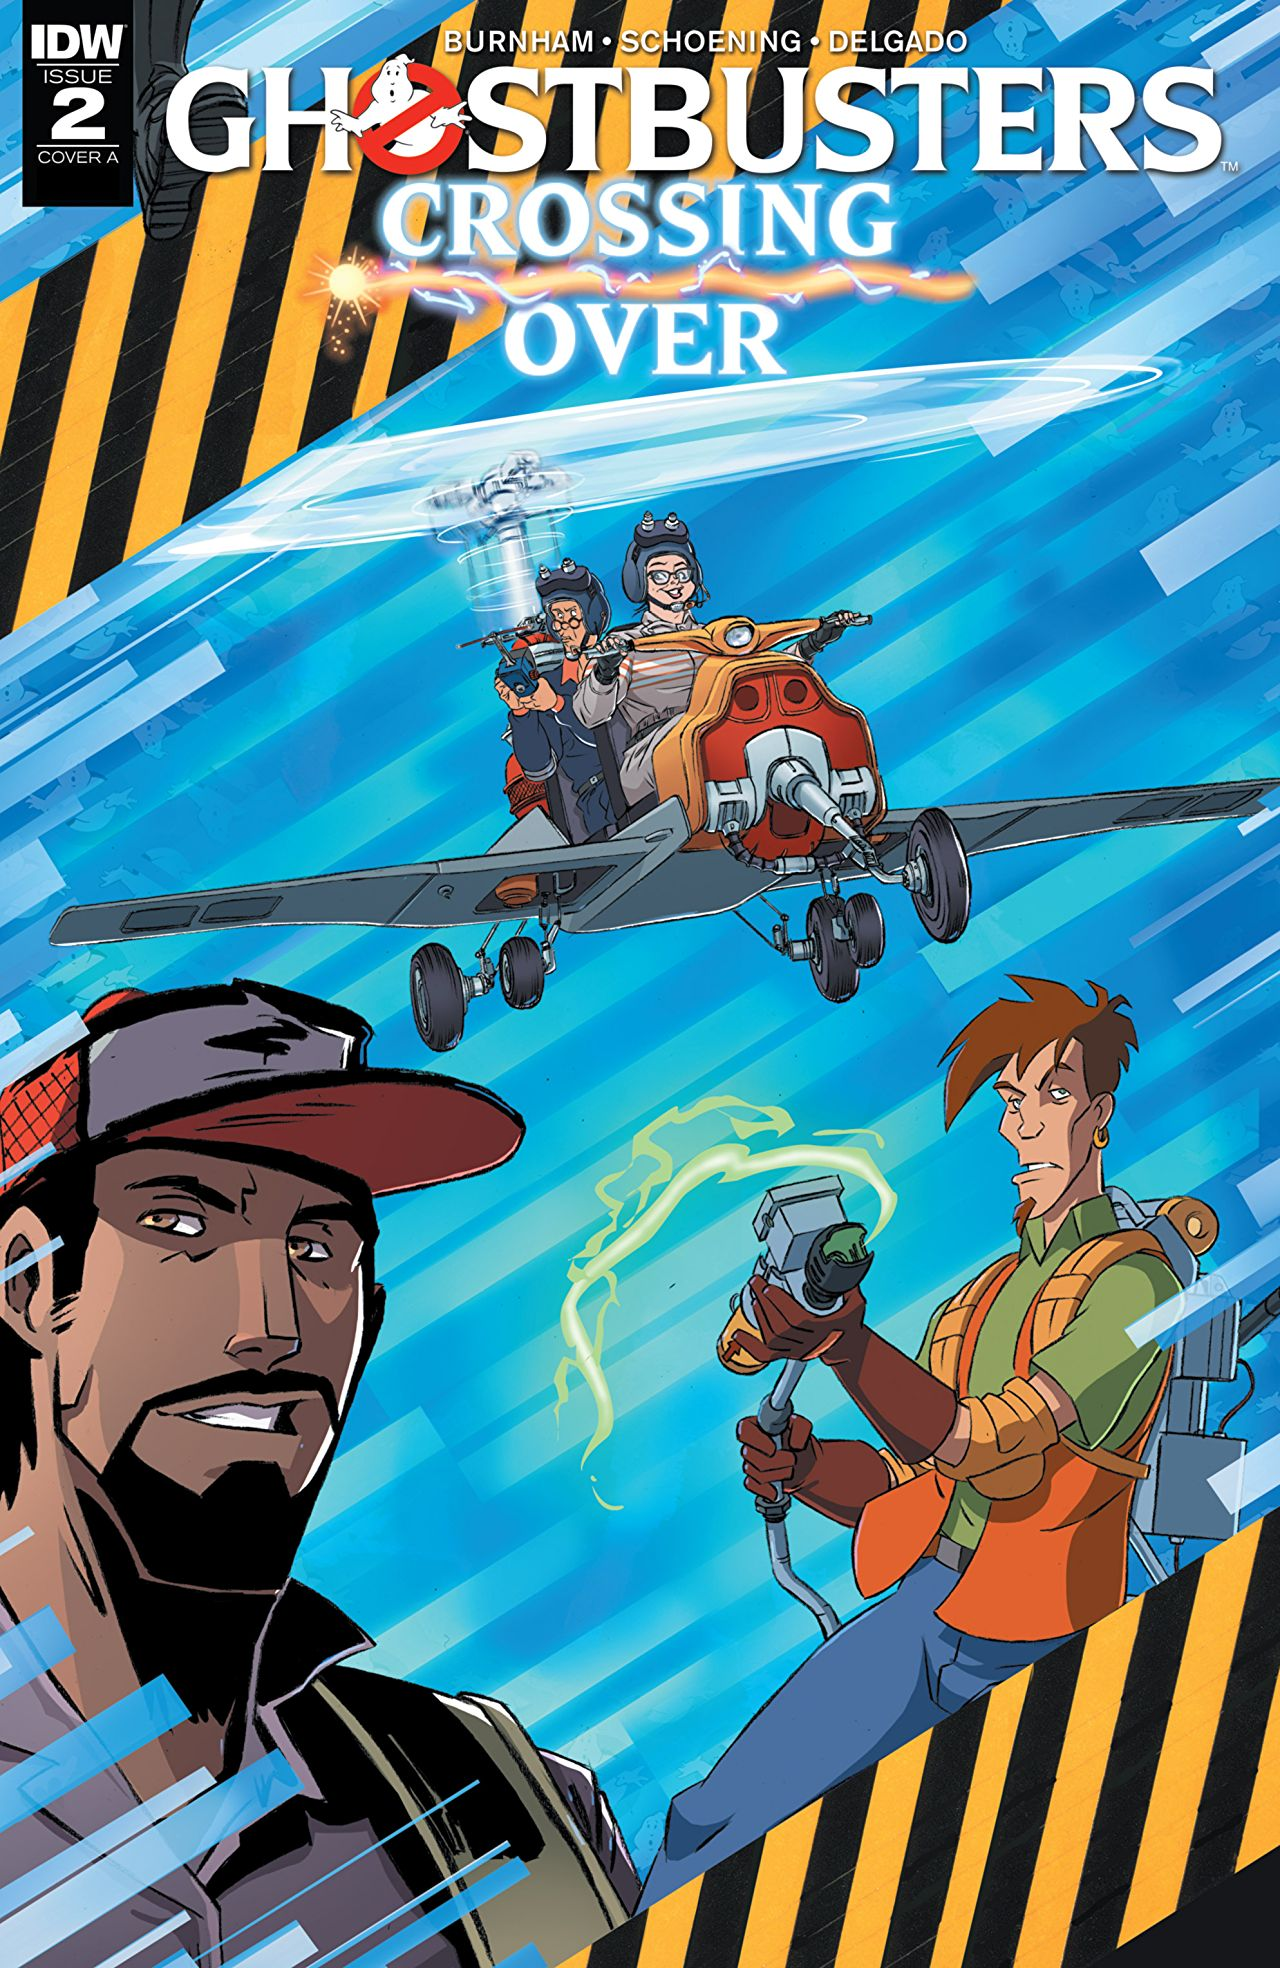 Ghostbusters: Crossing Over #2 Review